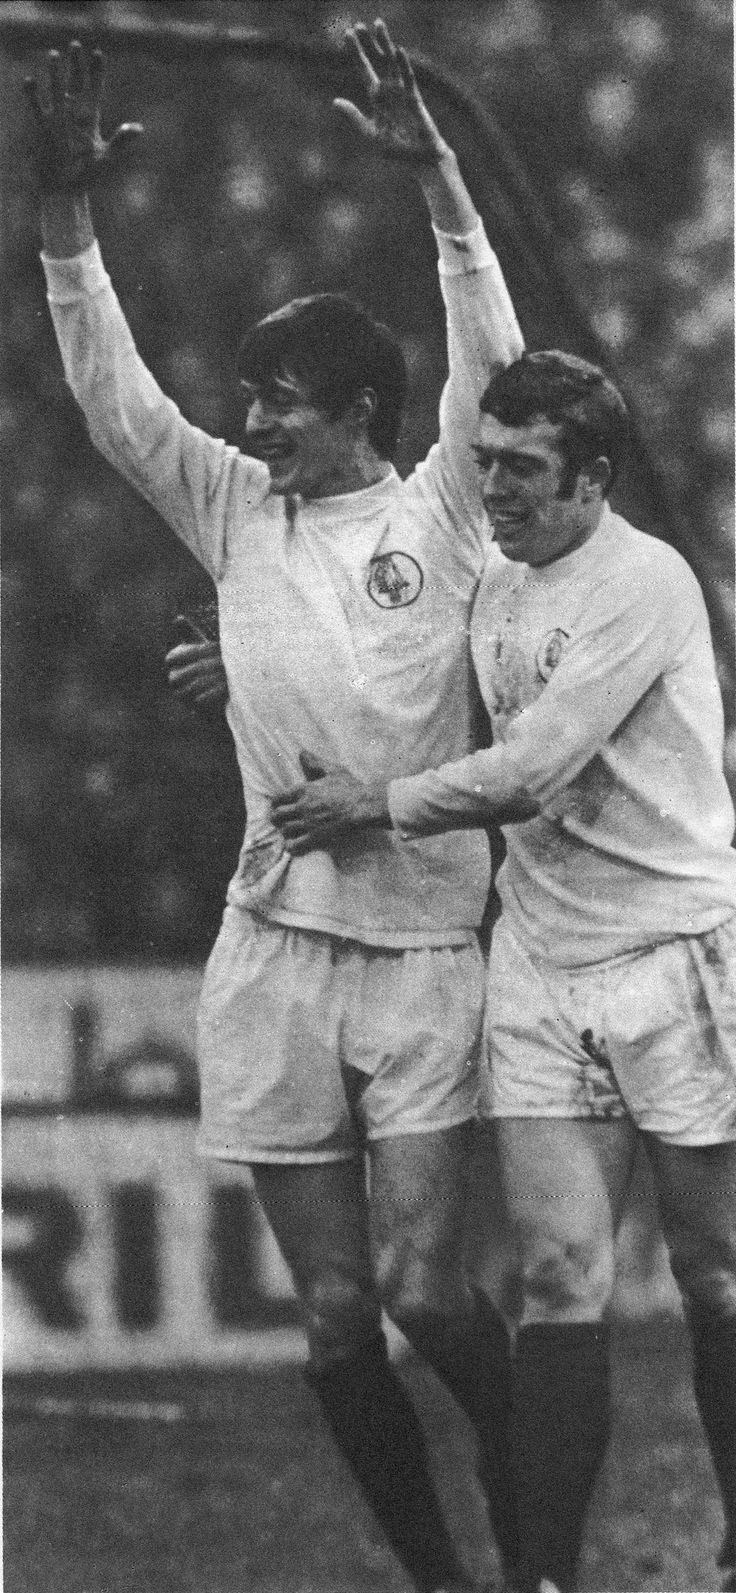 10th January 1970. Allan Clarke and strike partner Mick Jones celebrate Clarke's goal against Chelsea, at Stamford Bridge.